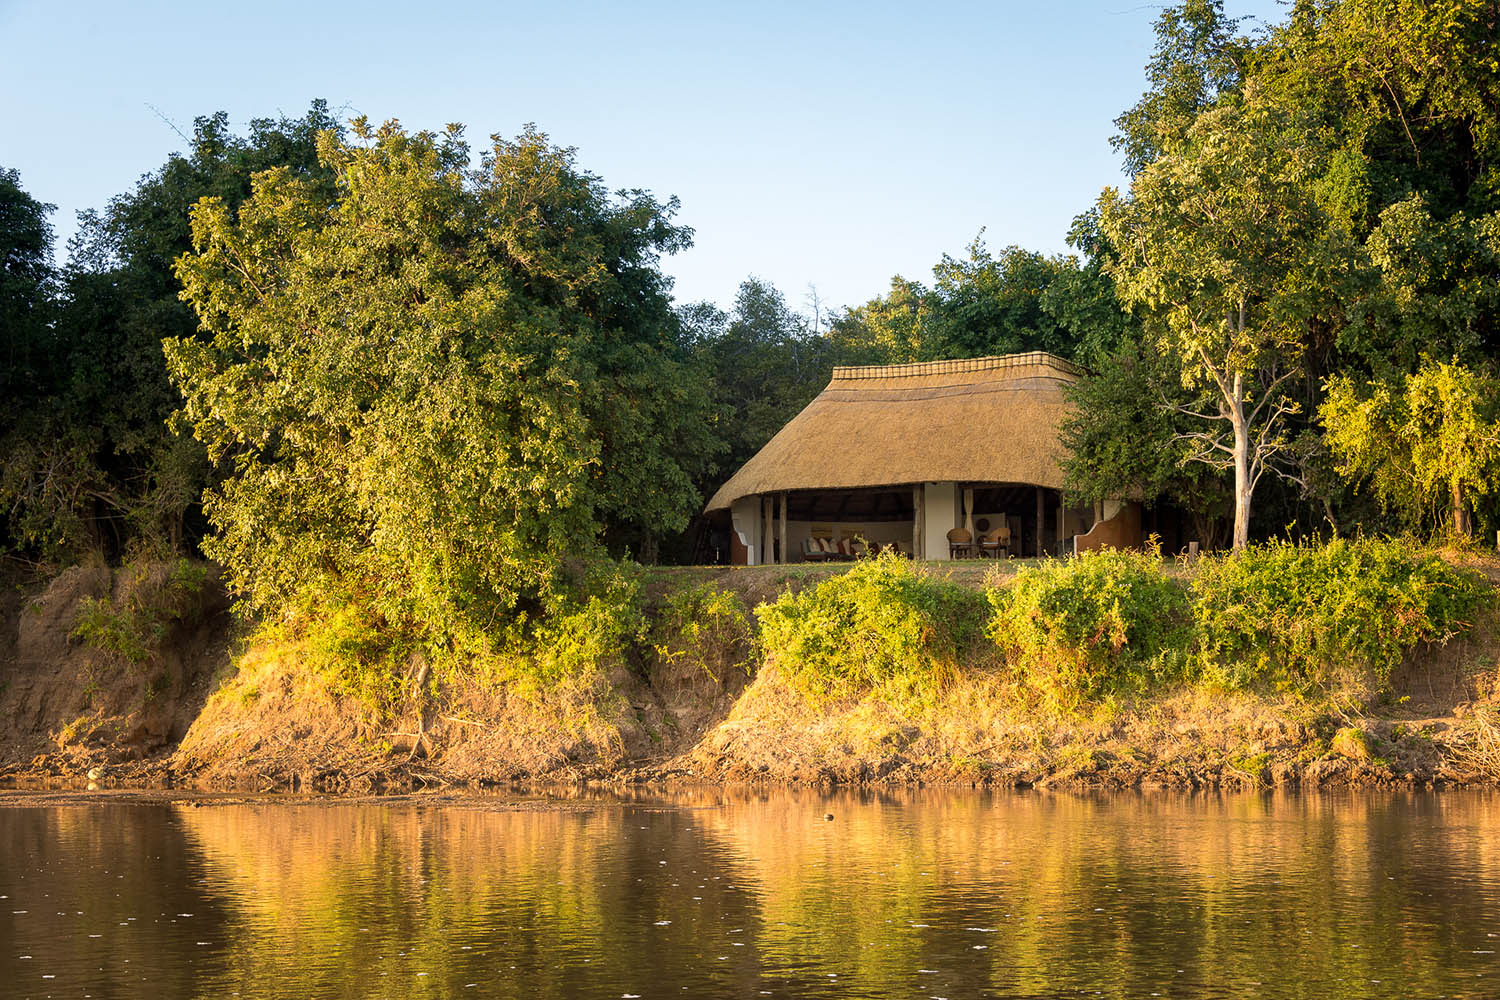 nkwali-zambia-in-style-safari-packages-south-luangwa-national-park-tours-views